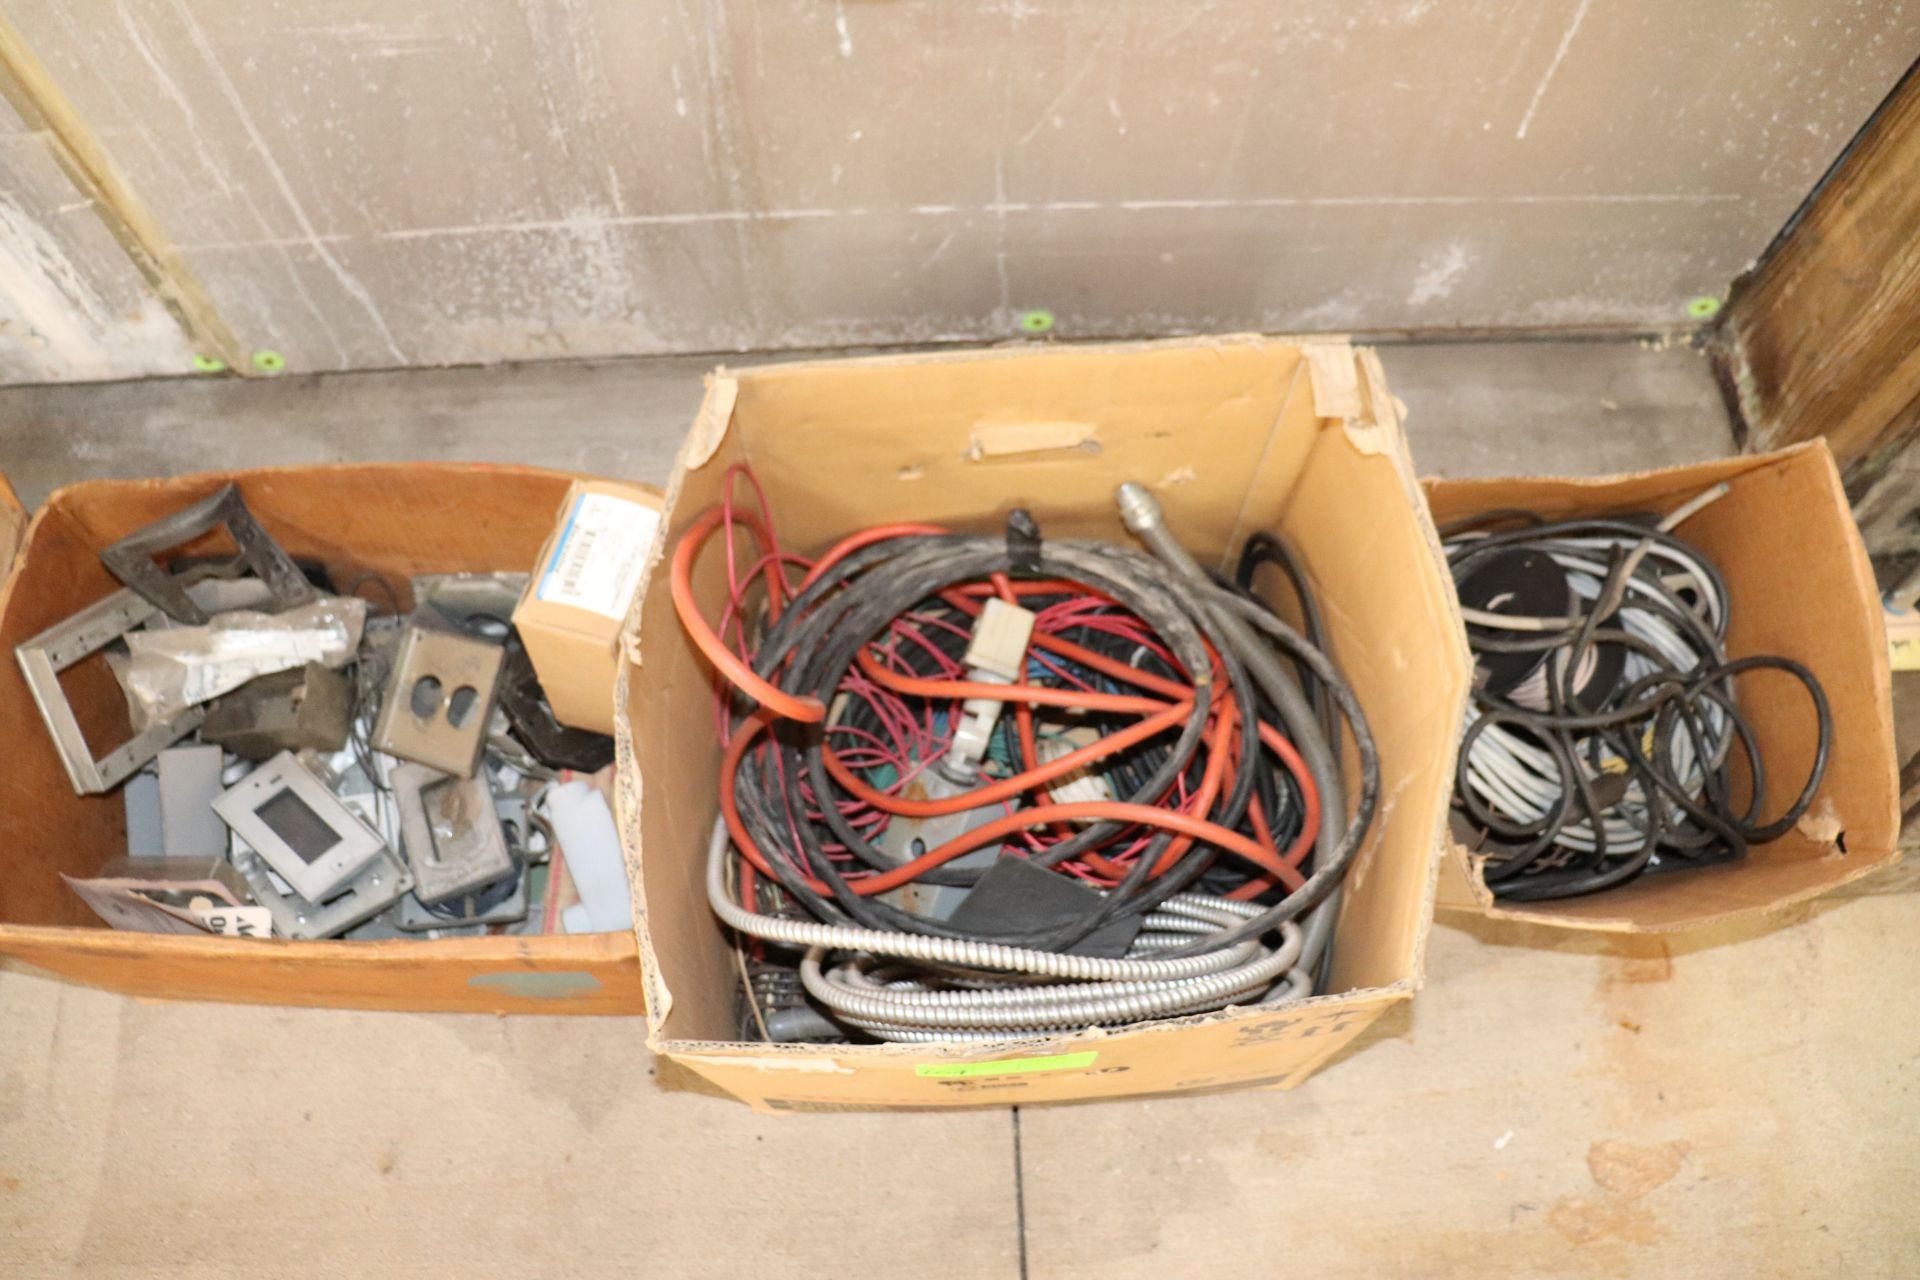 Three boxes of miscellaneous electrical supplies